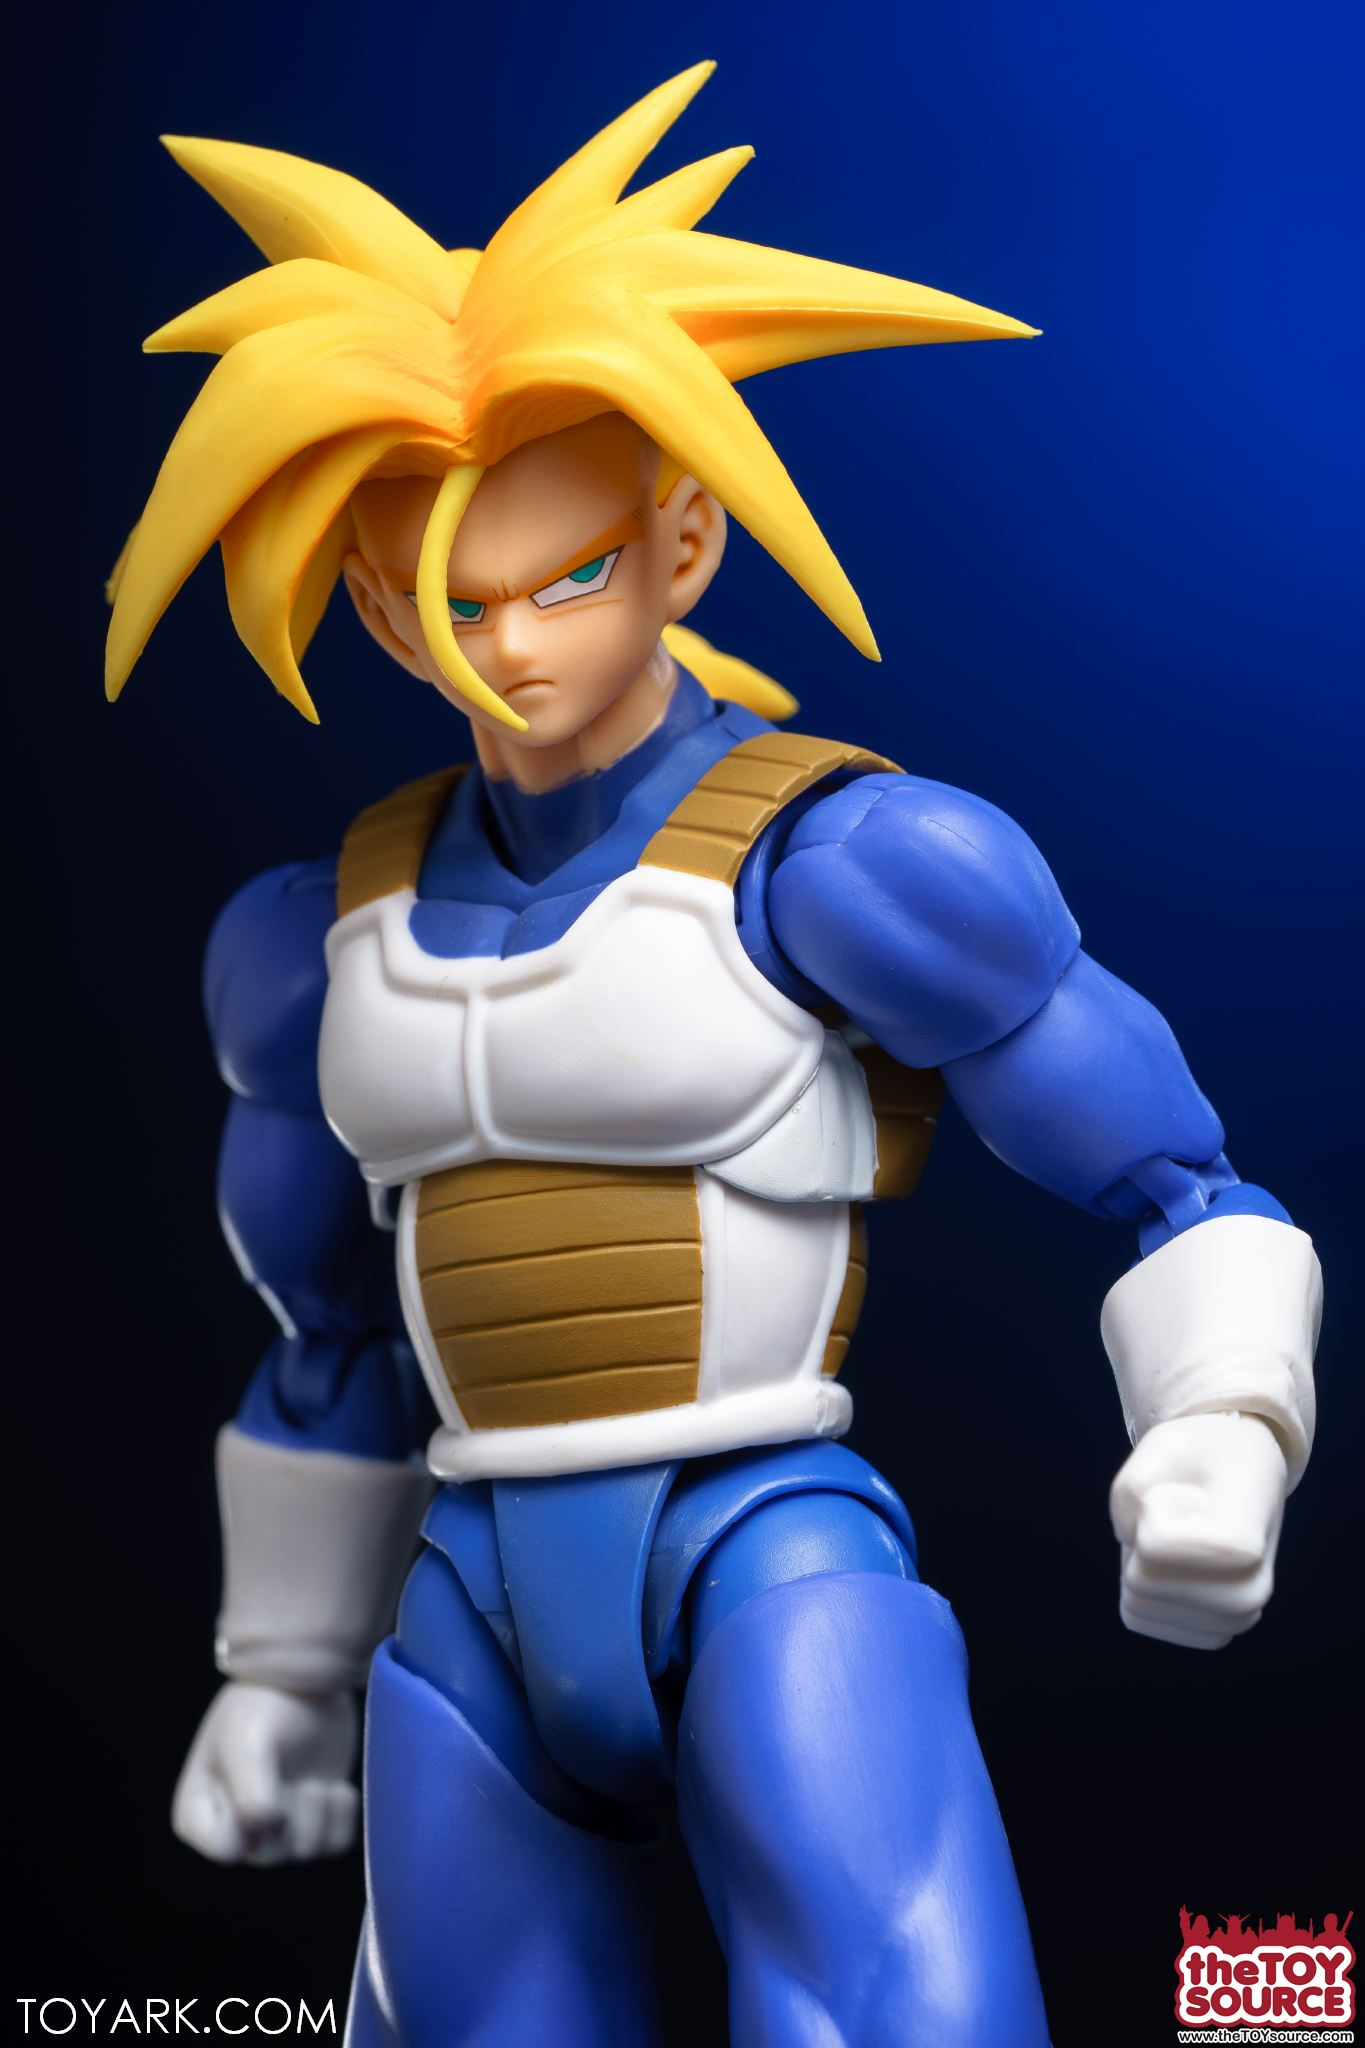 S H Figuarts Super Saiyan Armor Trunks In Hand Gallery The Toyark News The saiyan battle armor is a crafted armor set crafted from skeletal essences and hellstone bars. the toyark